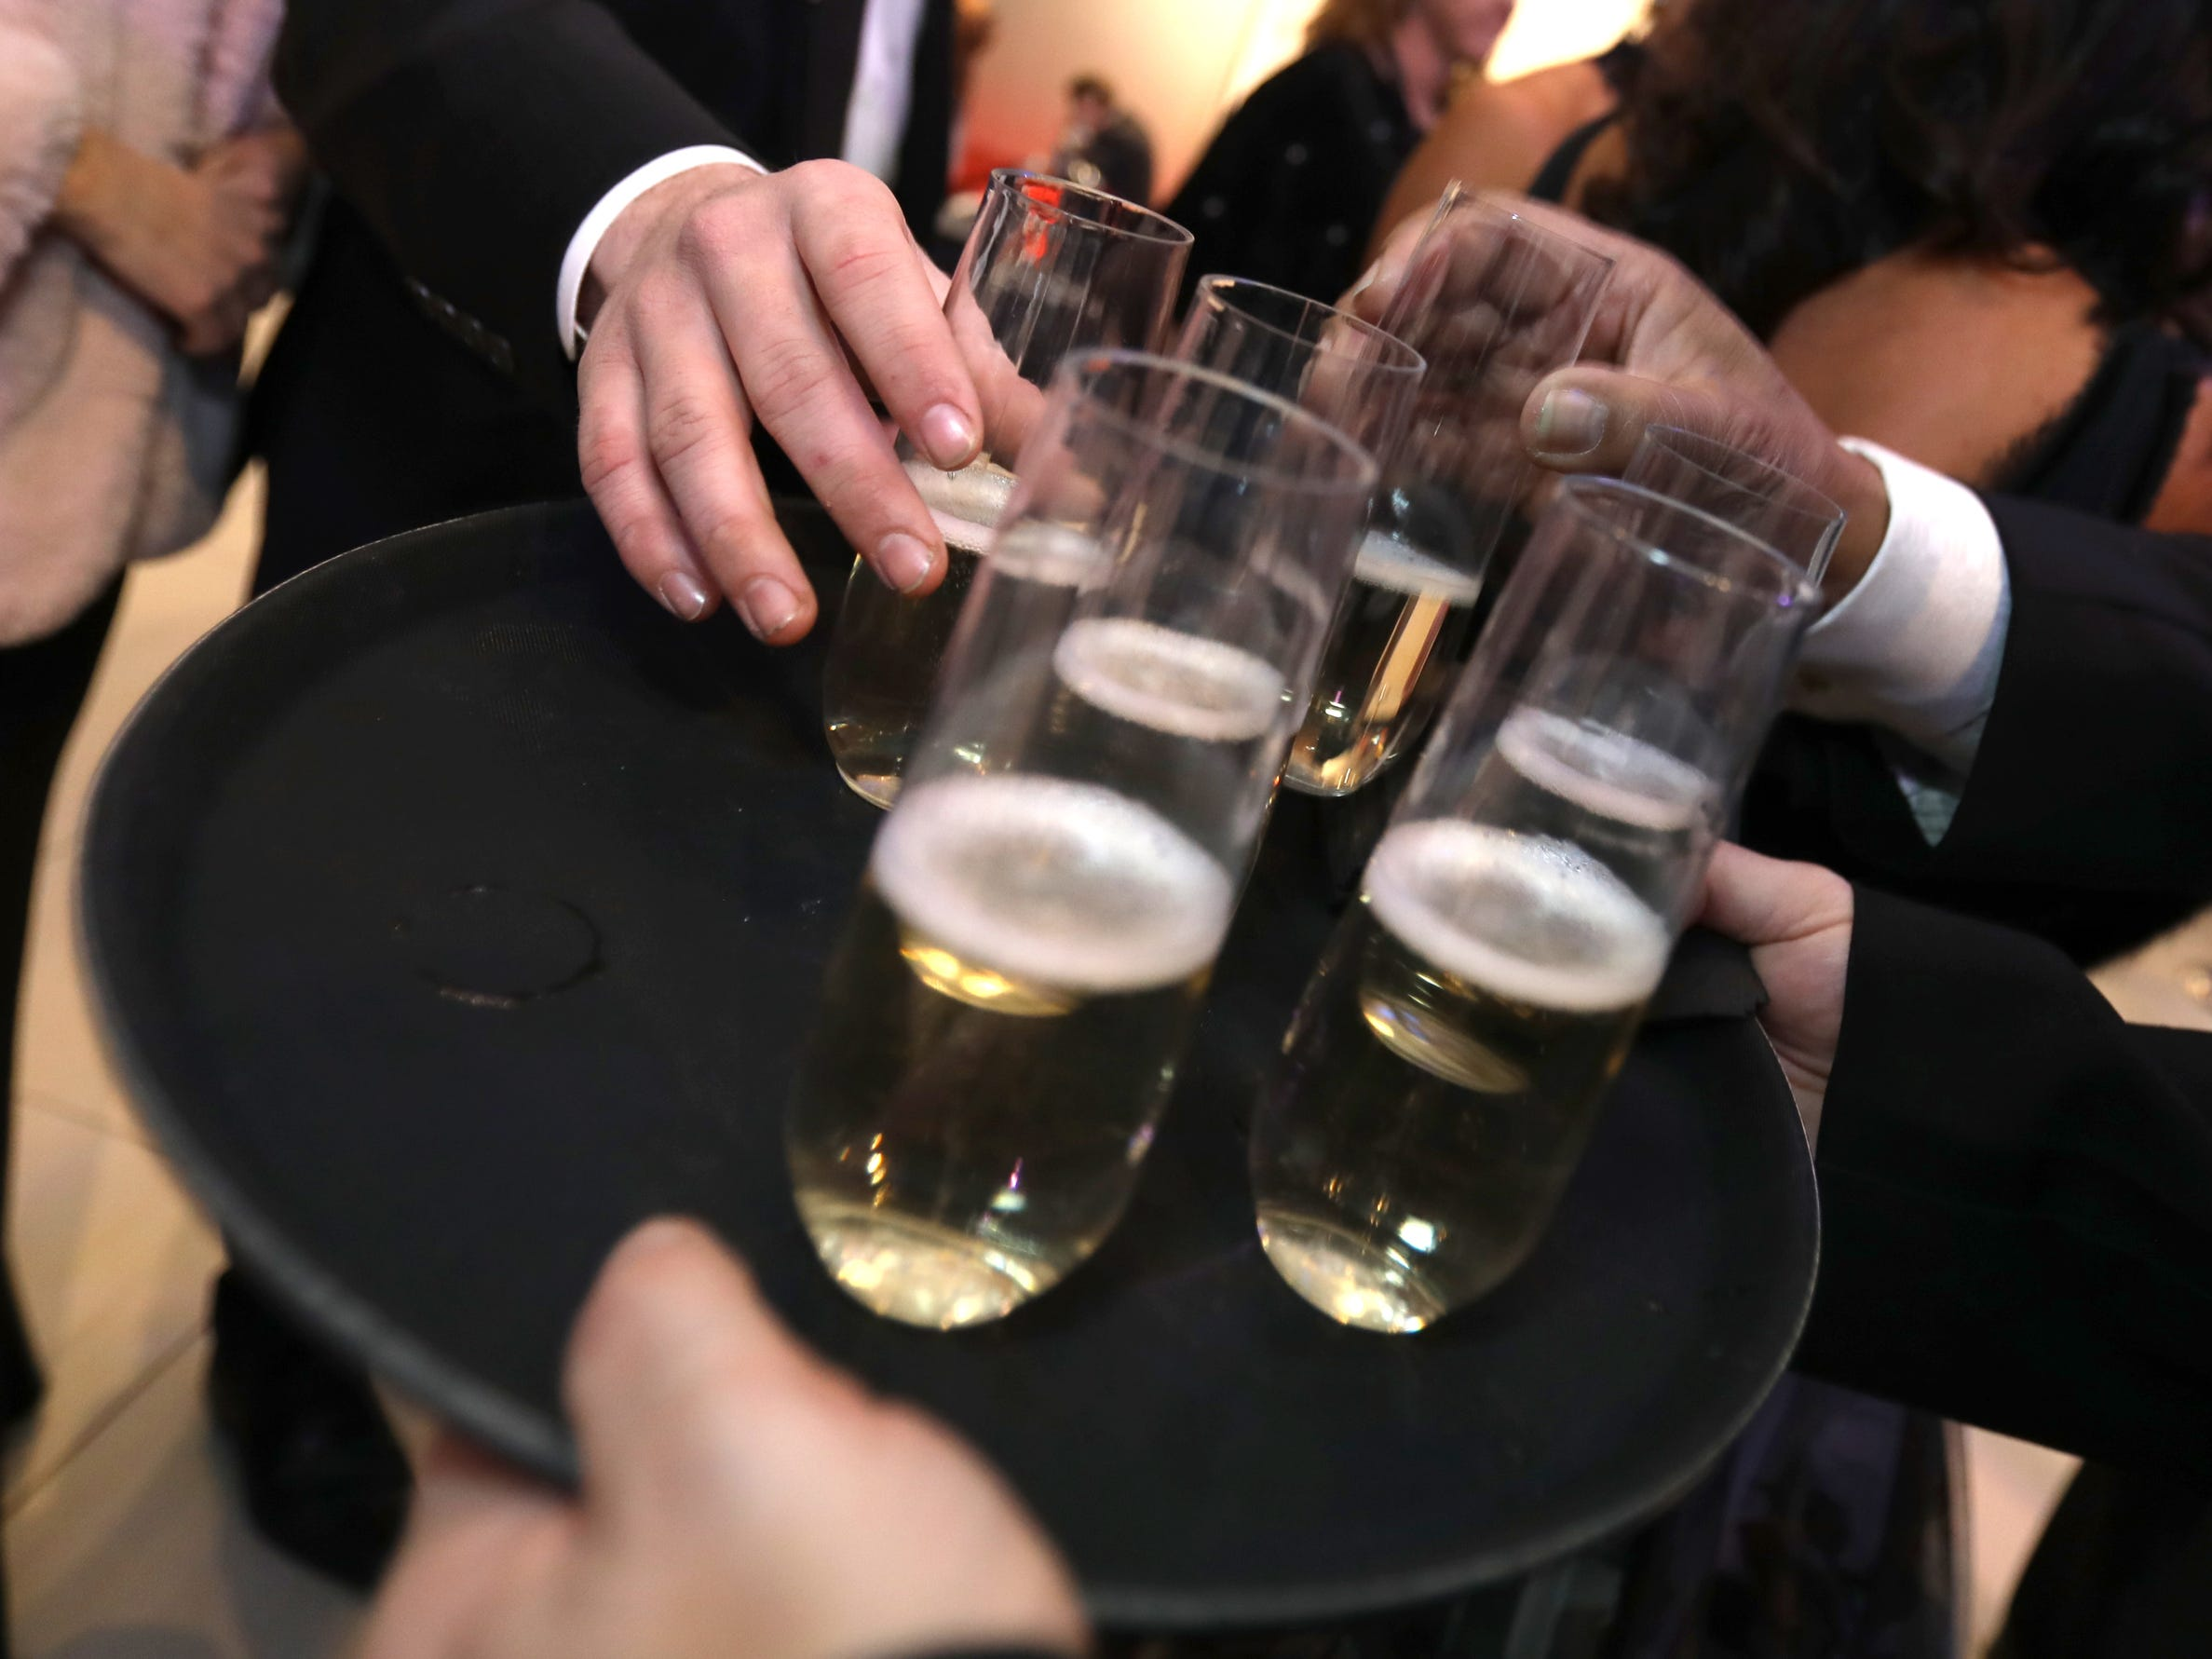 Champagne being served before the ribbon cutting ceremony at the 2019 North American International Auto Show Charity Preview at Cobo Center in Detroit on Friday, January 18, 2019.